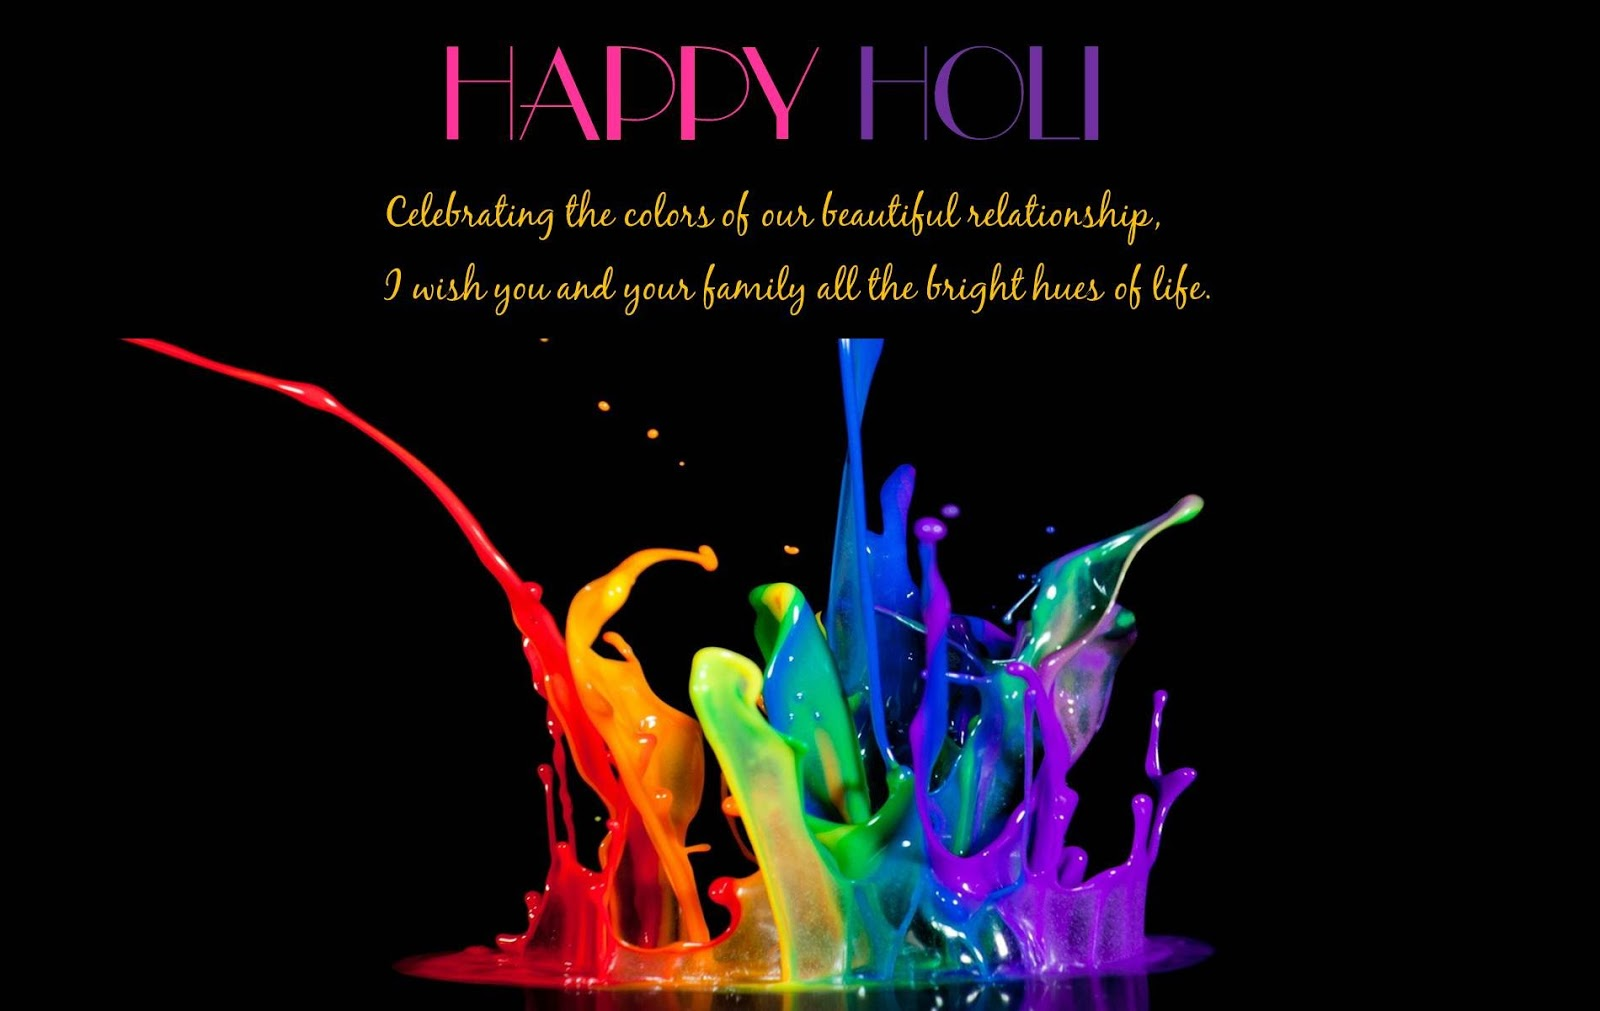 Happy Holi Sms Best Happy Holi Lovely Smsmessages And Quotes In